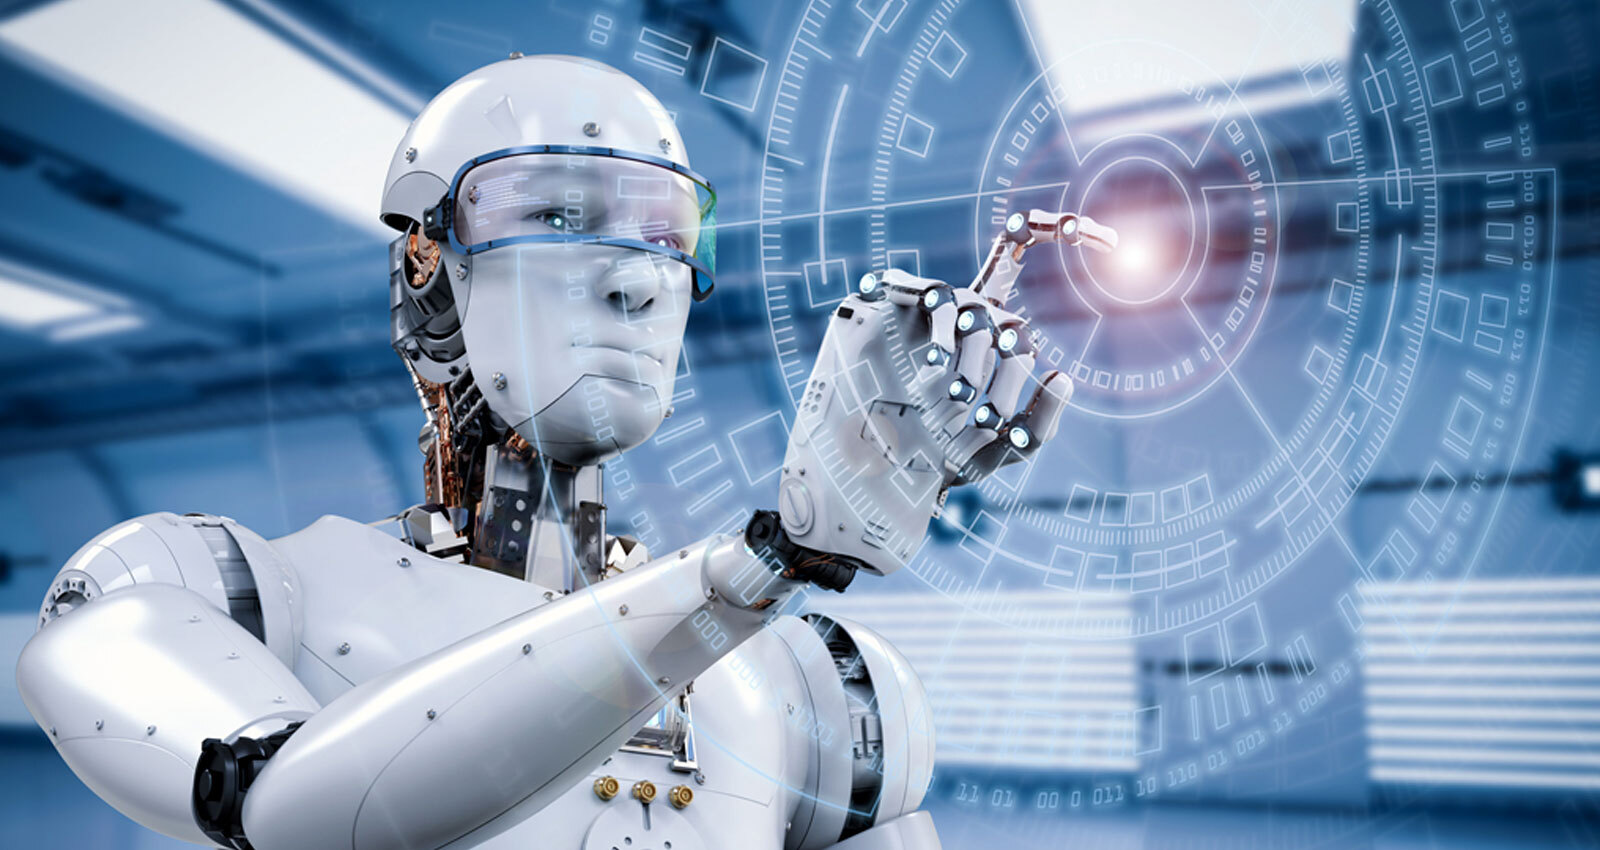 A robot working on new technologies(RPA & AI together play an important role in digital transformation)